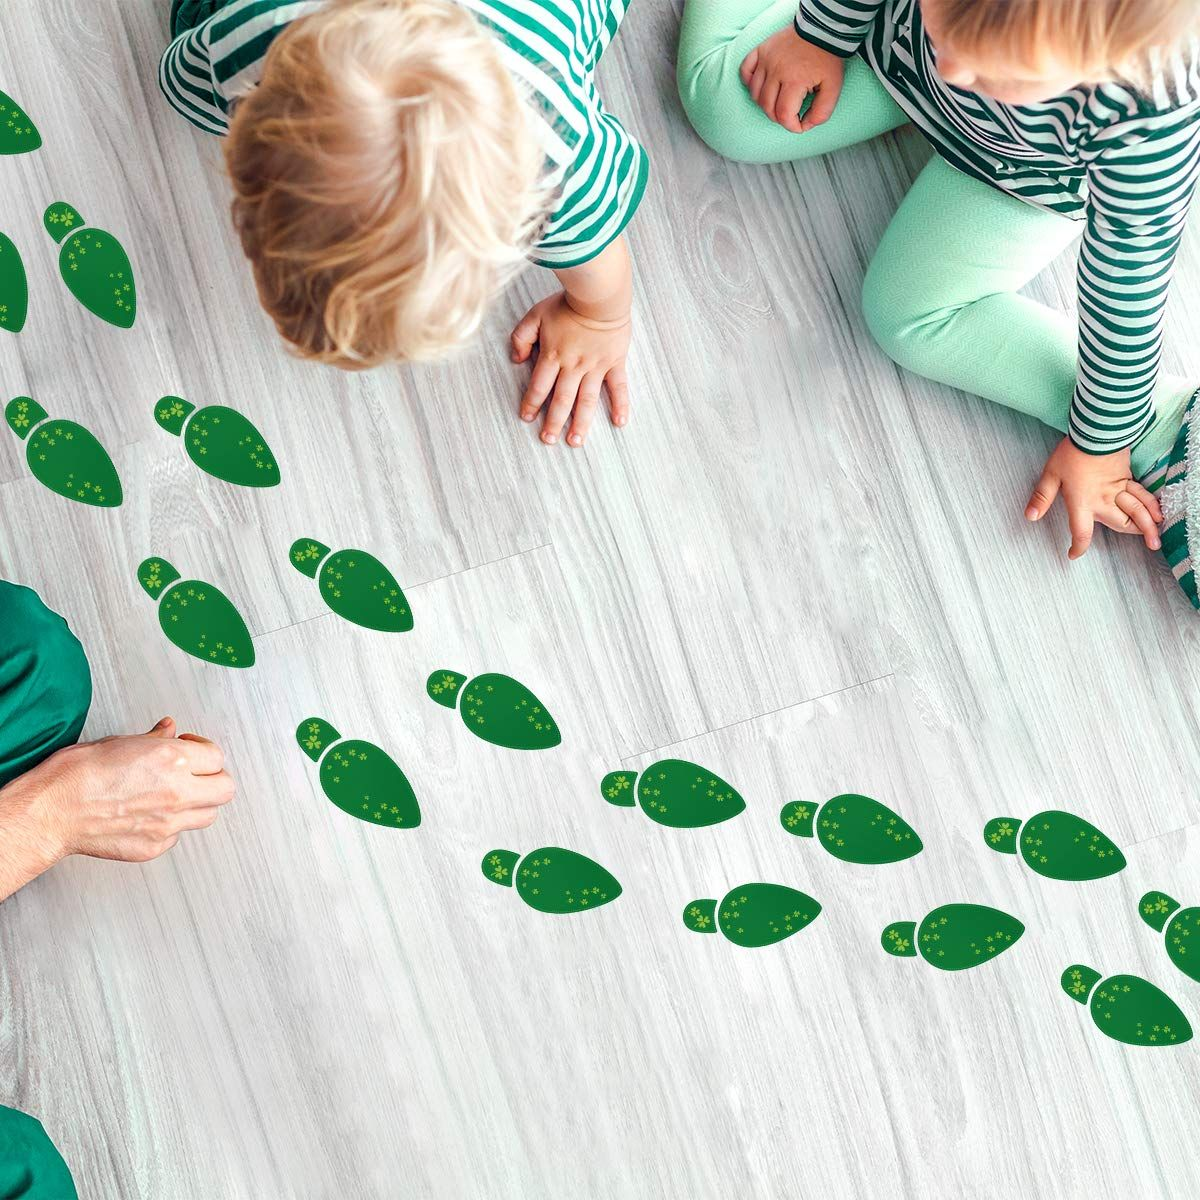 St Patricks Day Decorations Leprechaun Footprint Floor Clings Stickers Removable Shamrock Foot Stickers For Wi Party Favor Supplies Cling Stickers Floor Decal